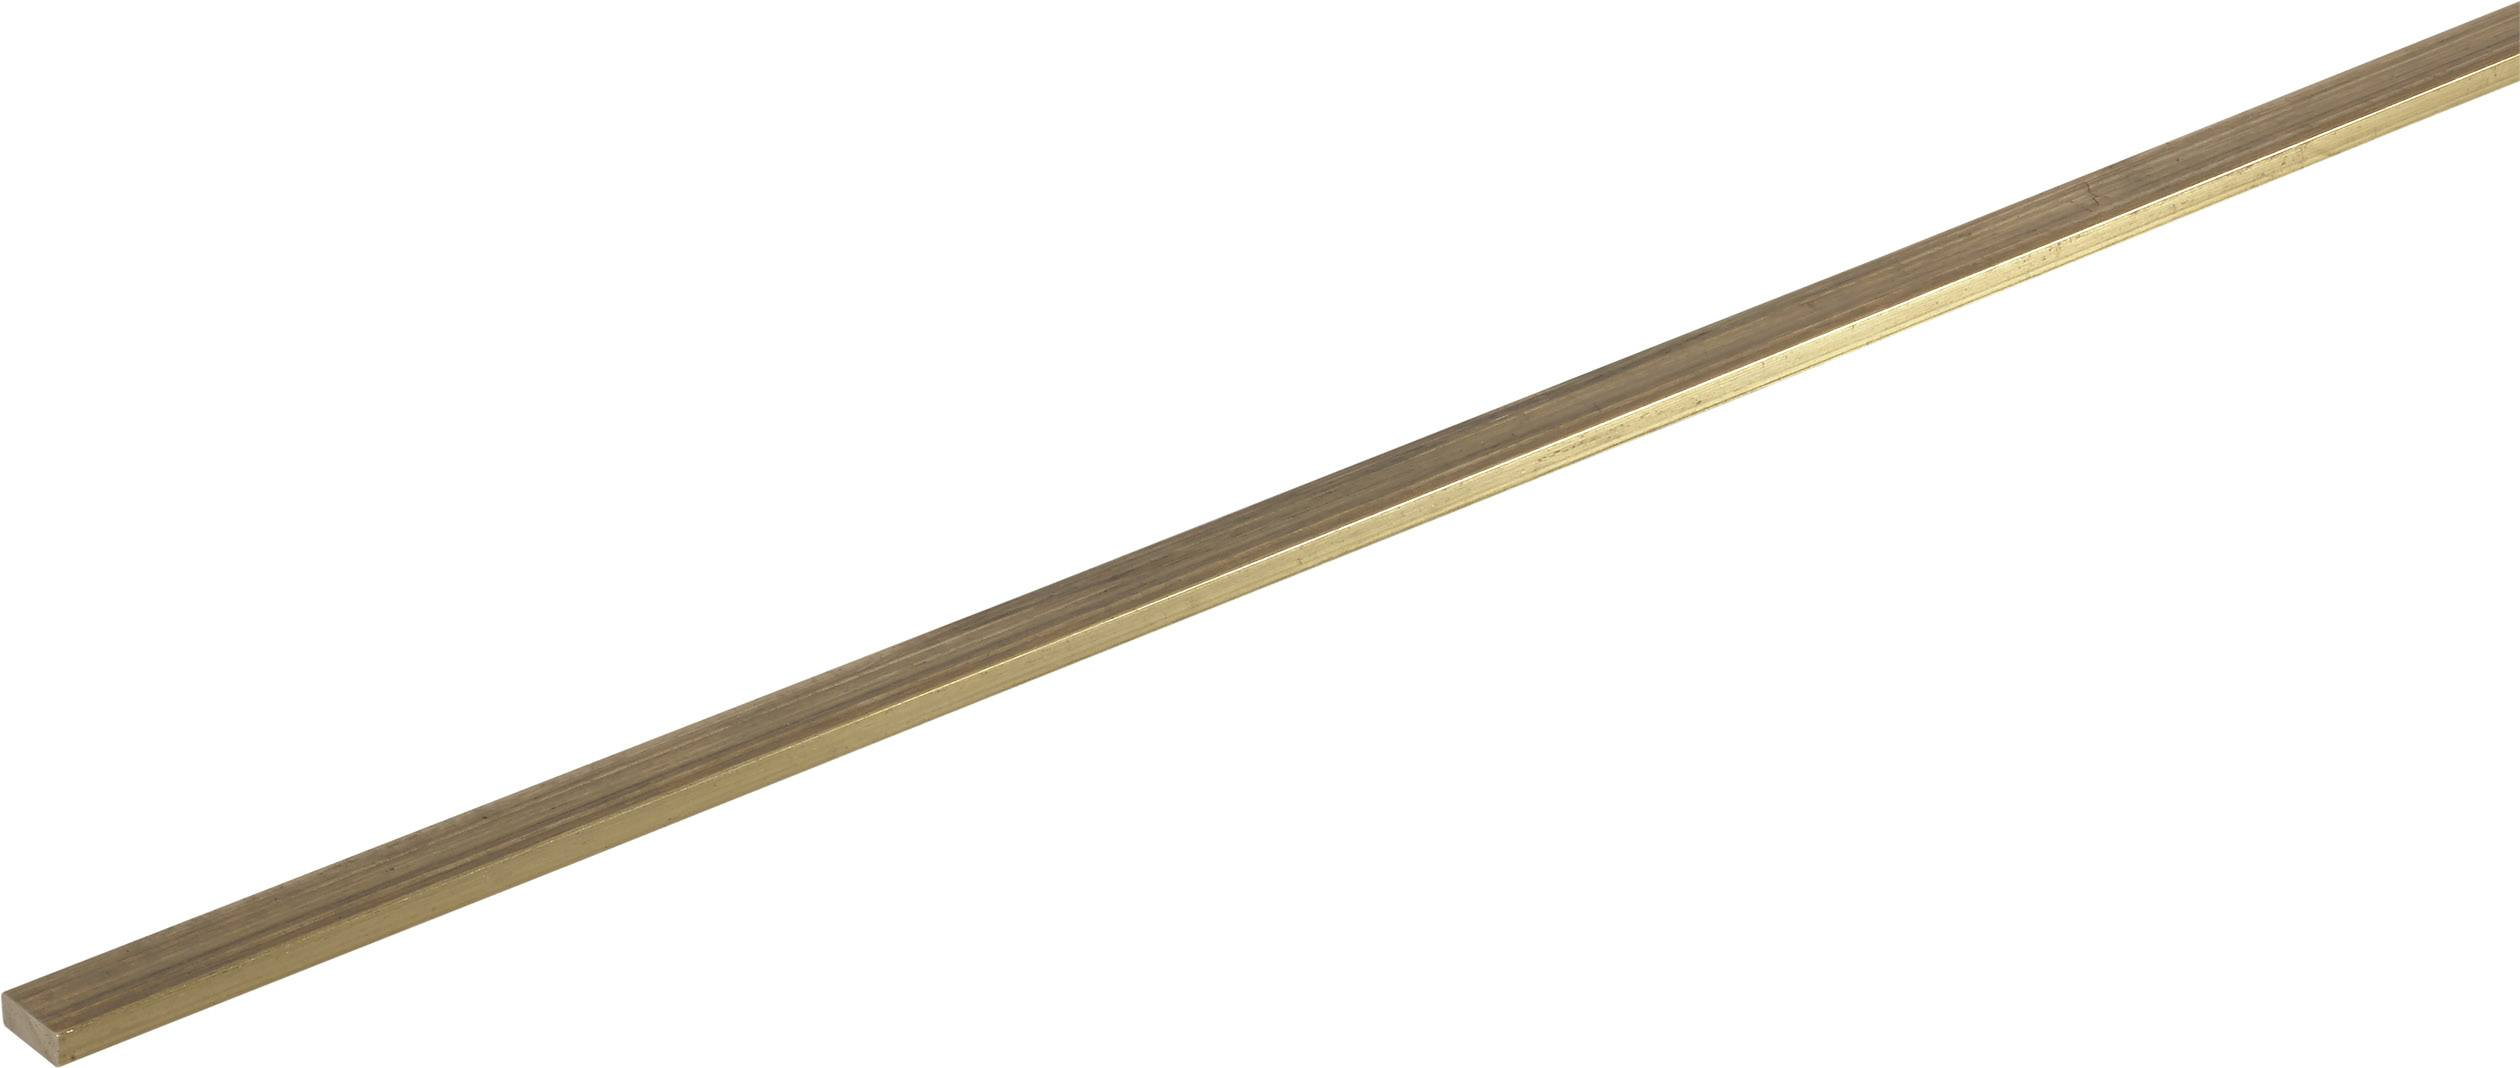 Messing  Flachmaterial Flach 5x2 mm //100mm Lang